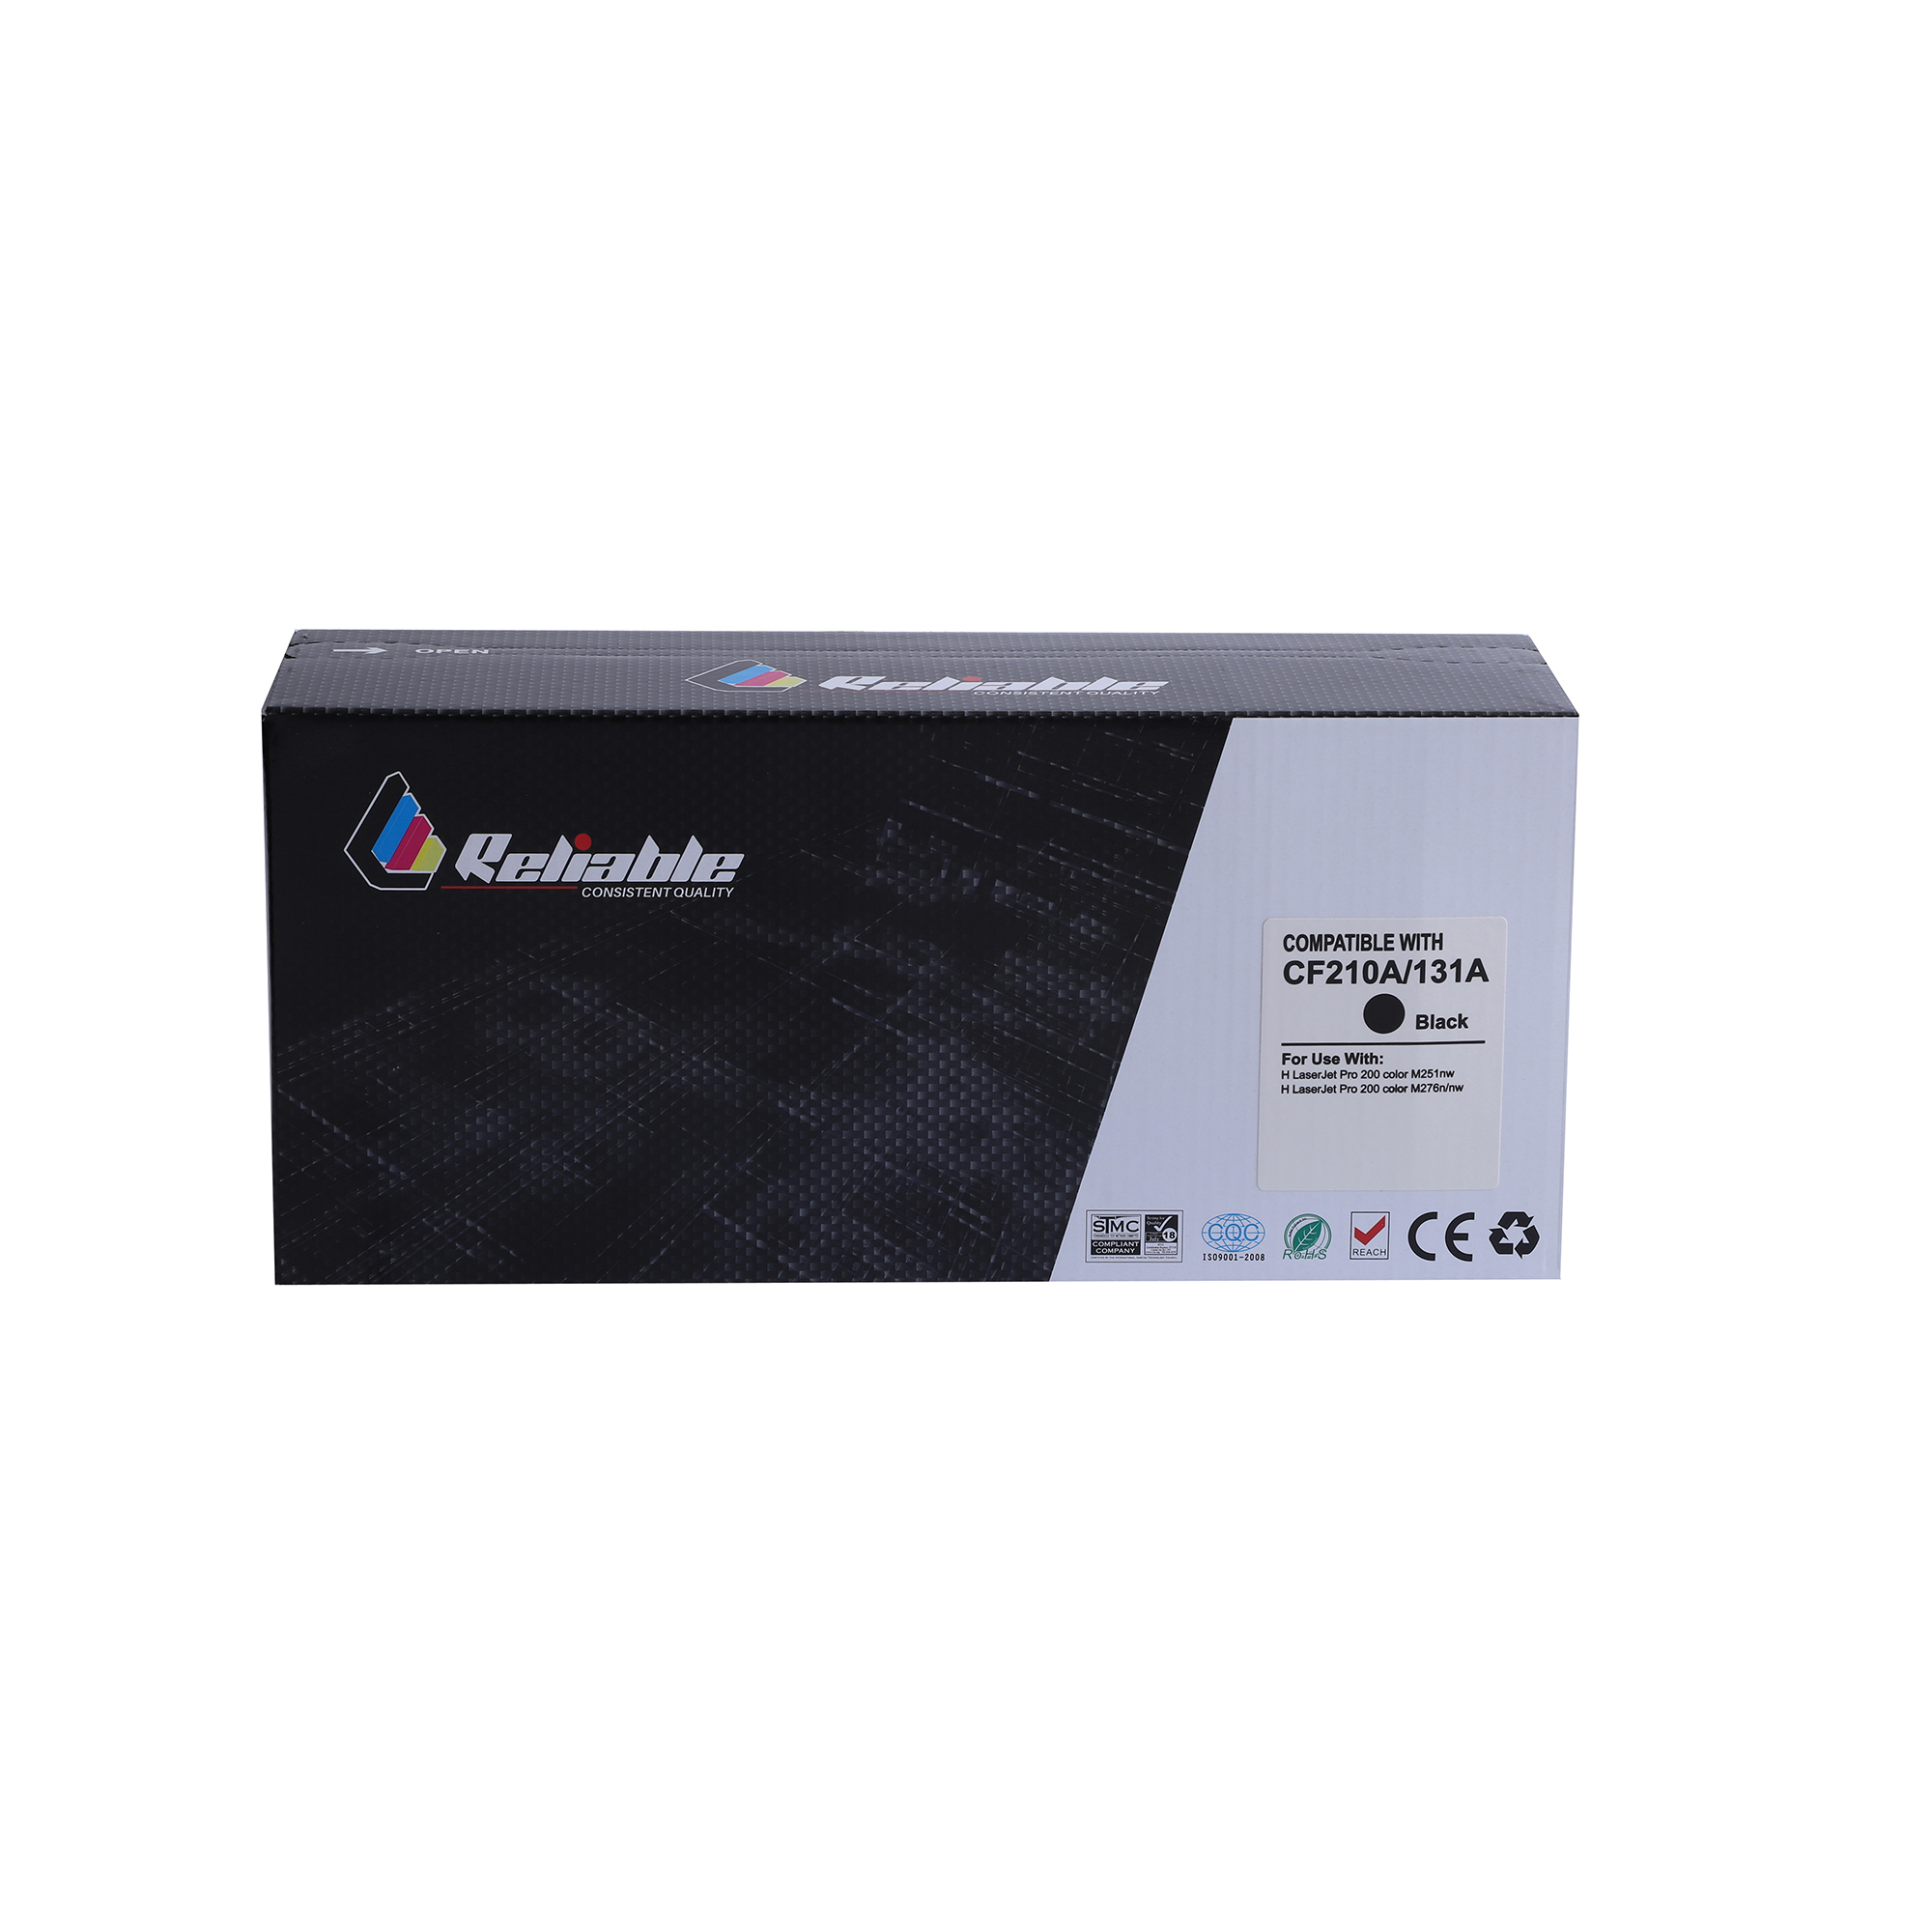 Reliable 125A (CB540A) / 131A (CF210A) / 128A CE320A Compatible Toner Cartridge - Black